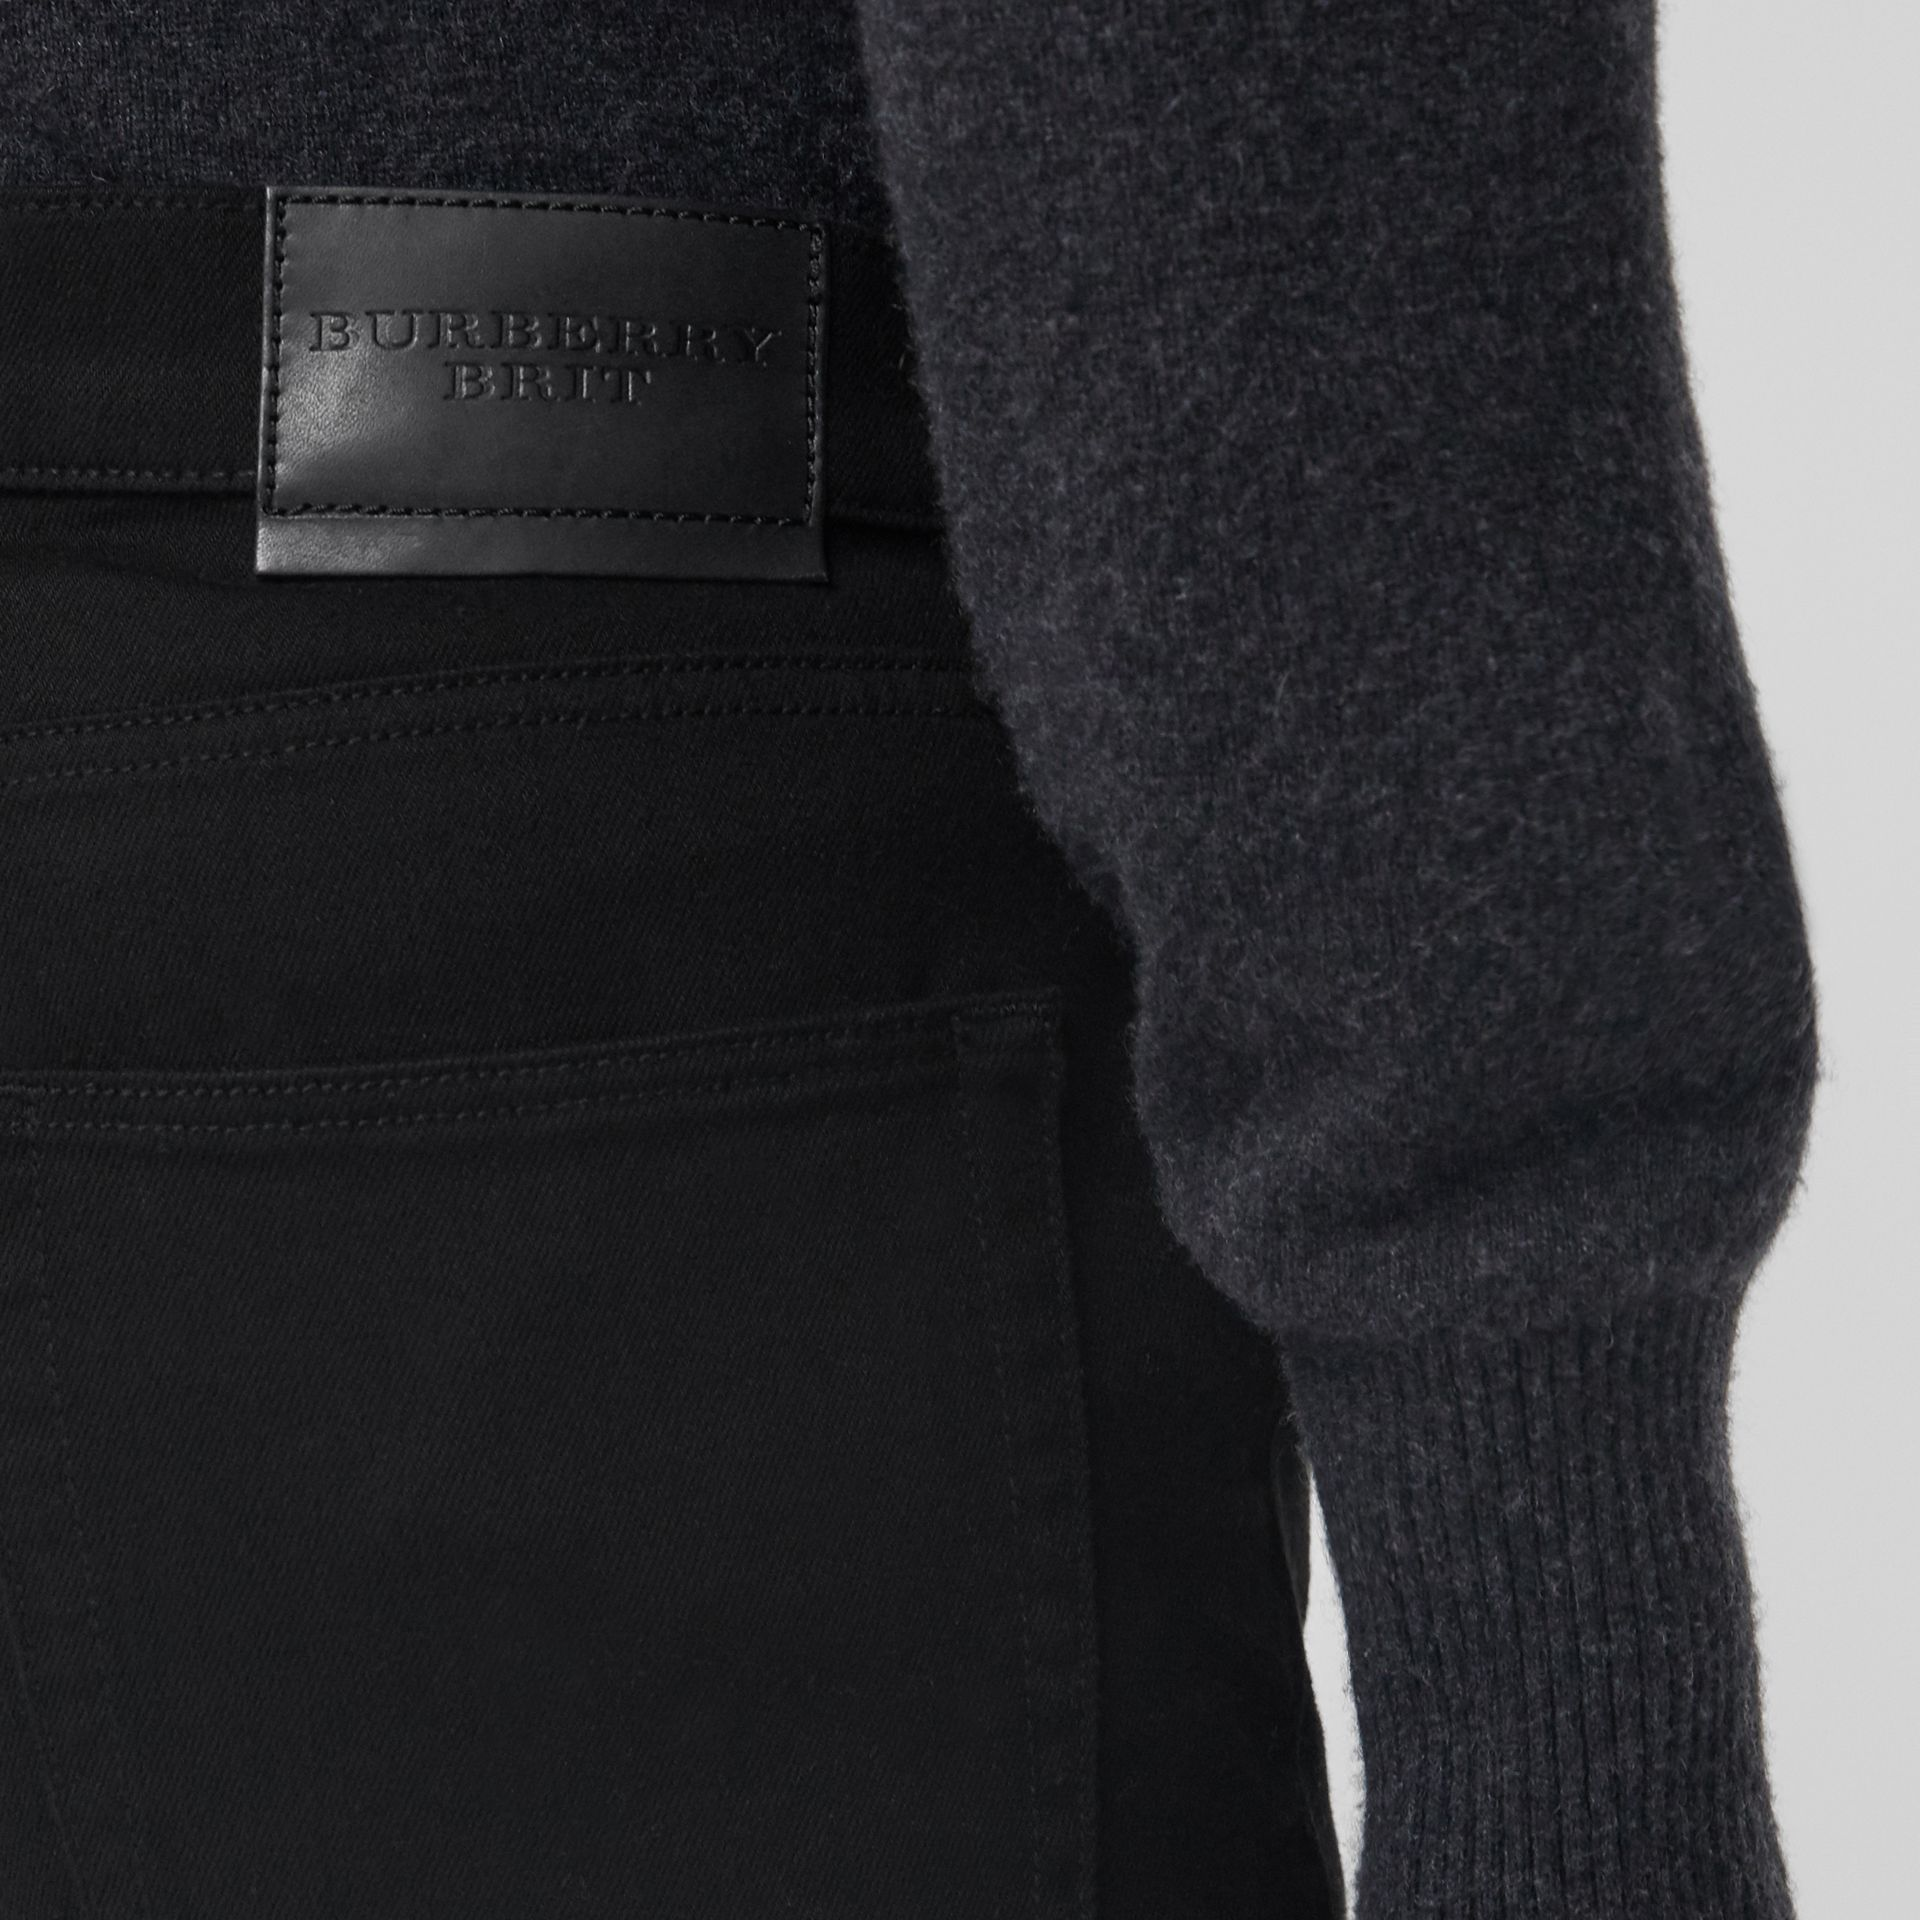 Jean denim extensible de coupe étroite (Noir) - Homme | Burberry - photo de la galerie 1